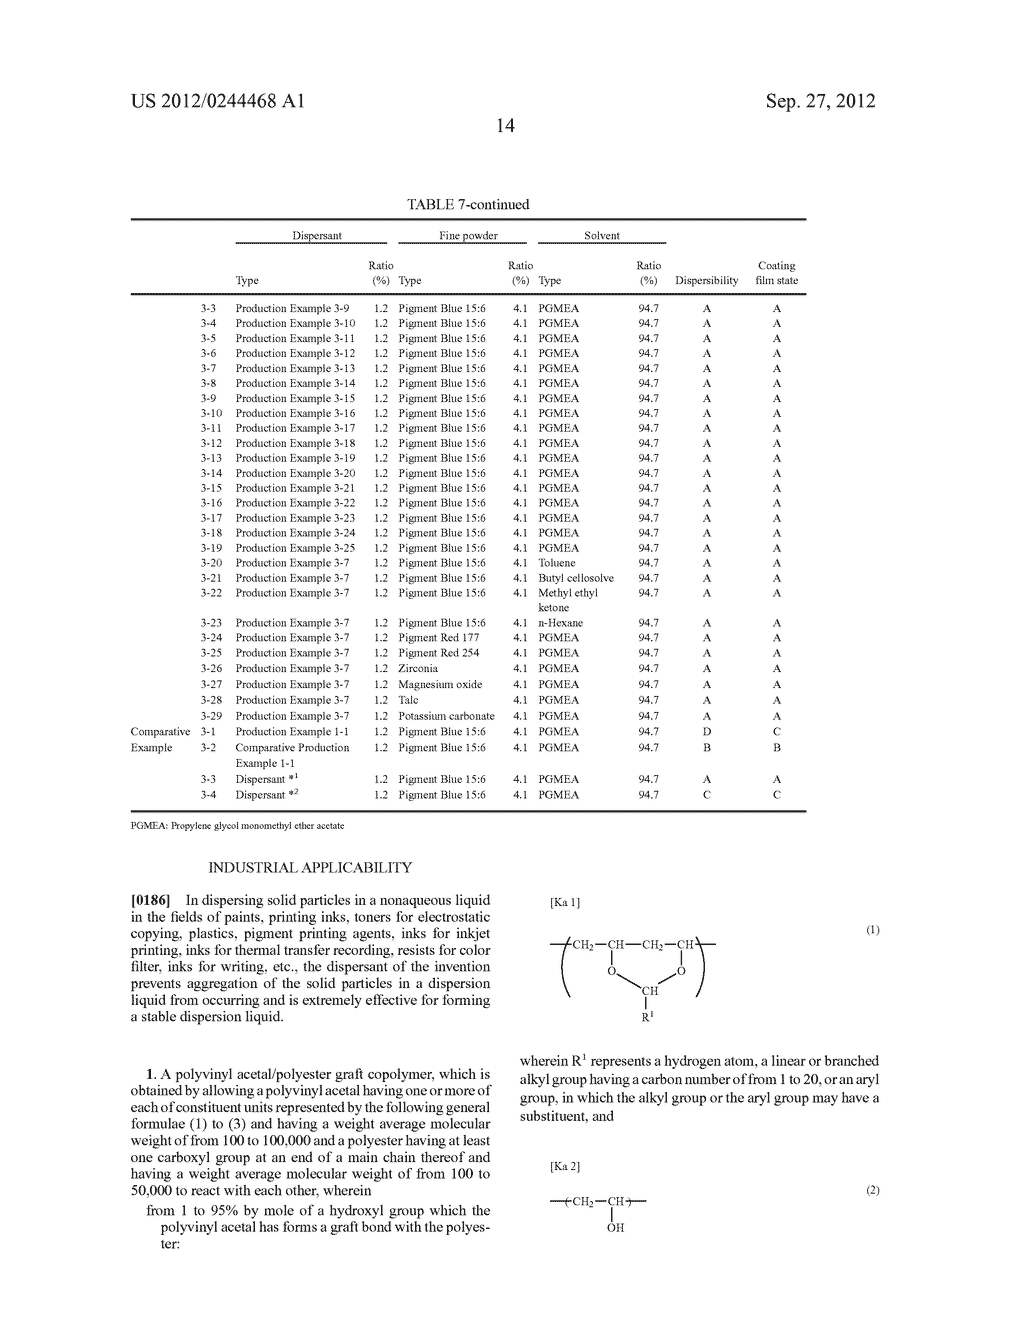 POLYVINYL ACETAL/POLYESTER GRAFT COPOLYMER, AND DISPERSANT - diagram, schematic, and image 15